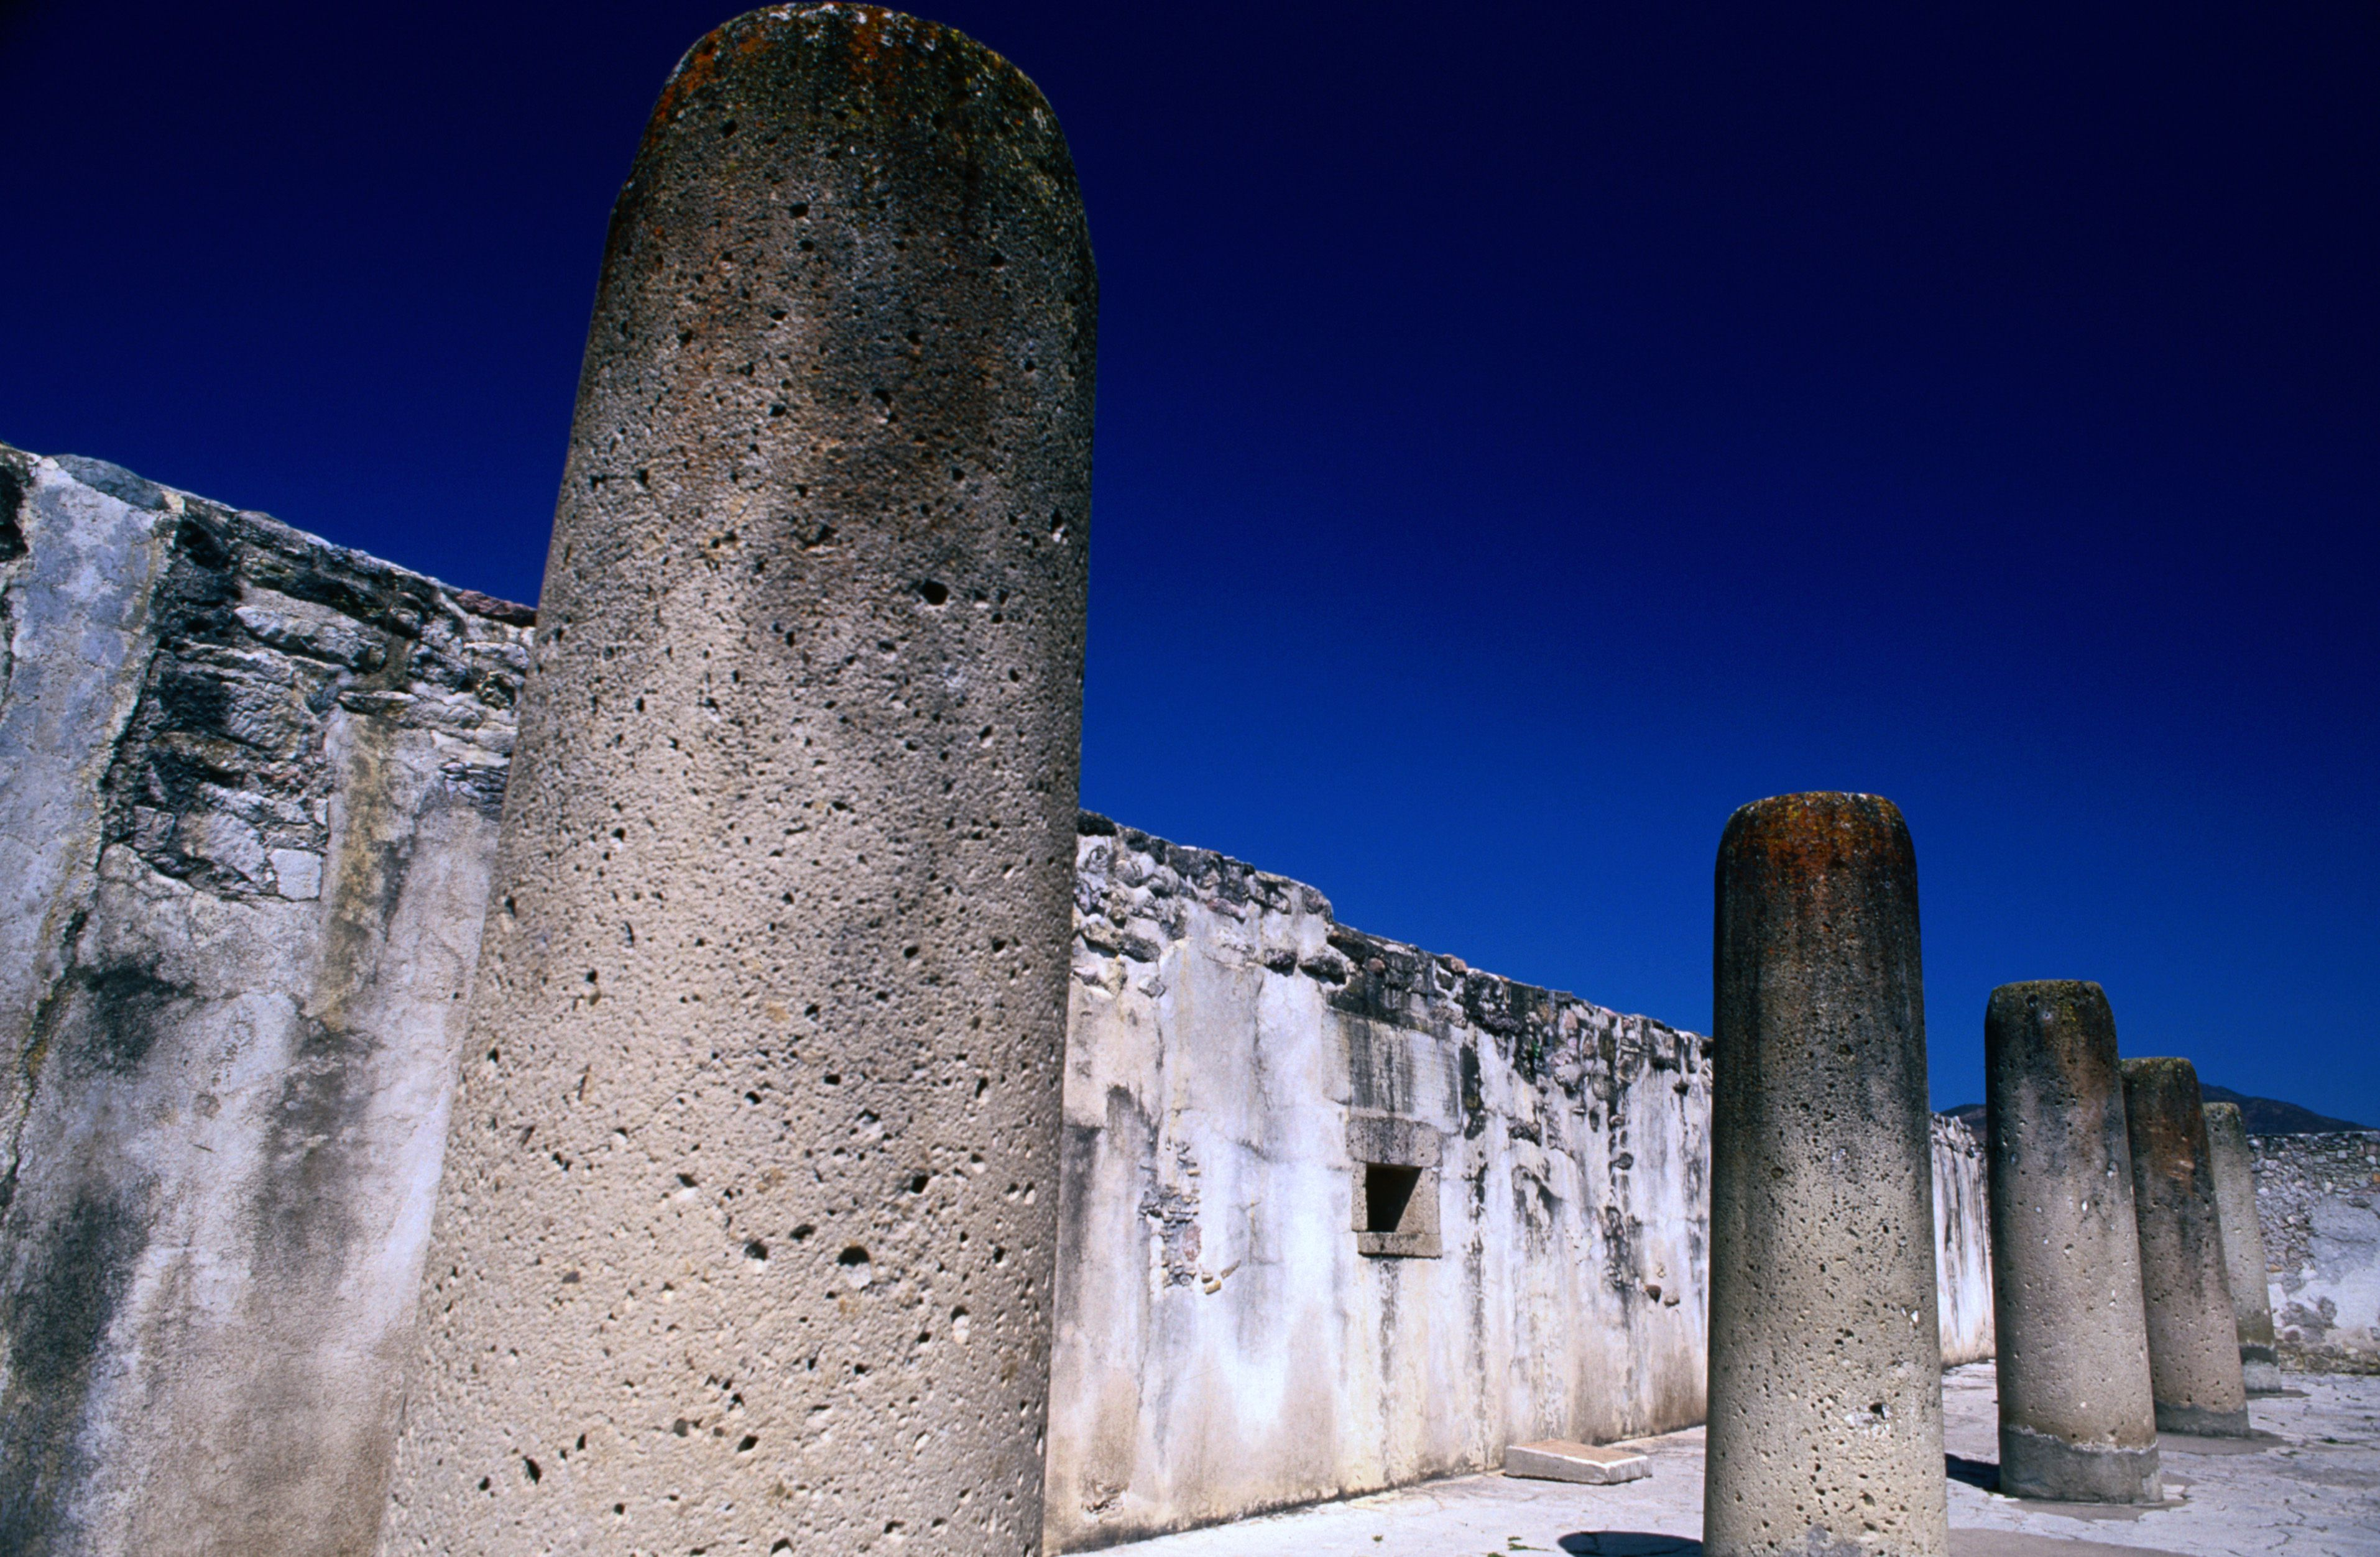 Hall of the Columns (Sala de las Columnas) in the archaelogical zone of Mitla.